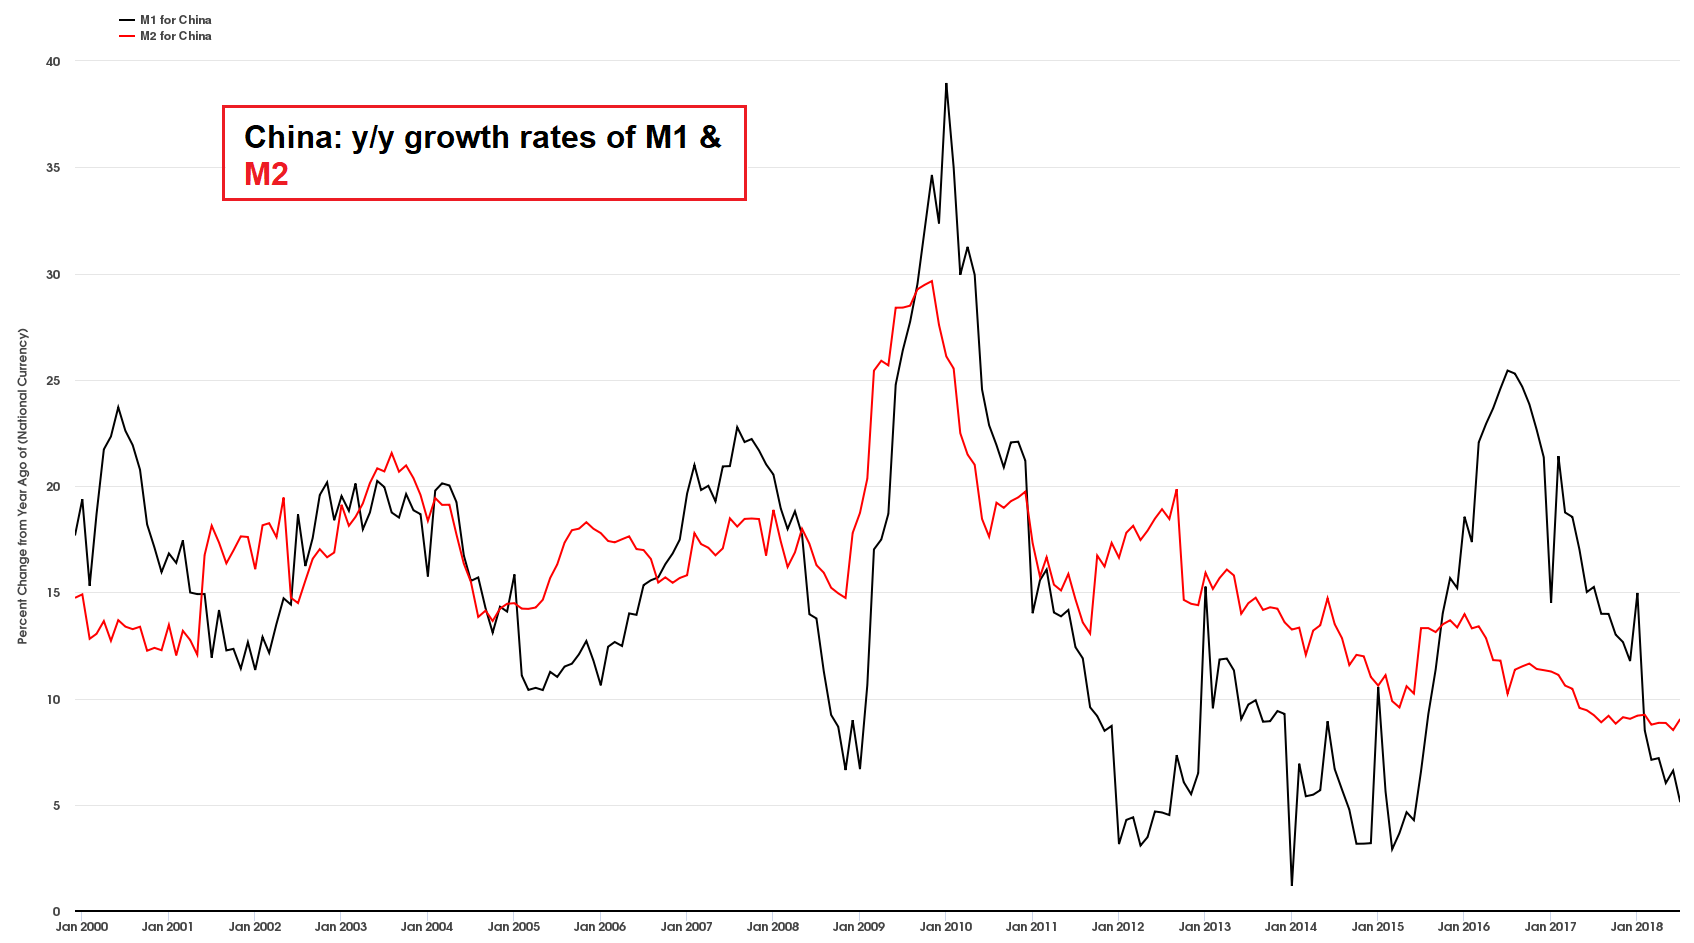 China Y/Y Growth Rates Of M1 & M2